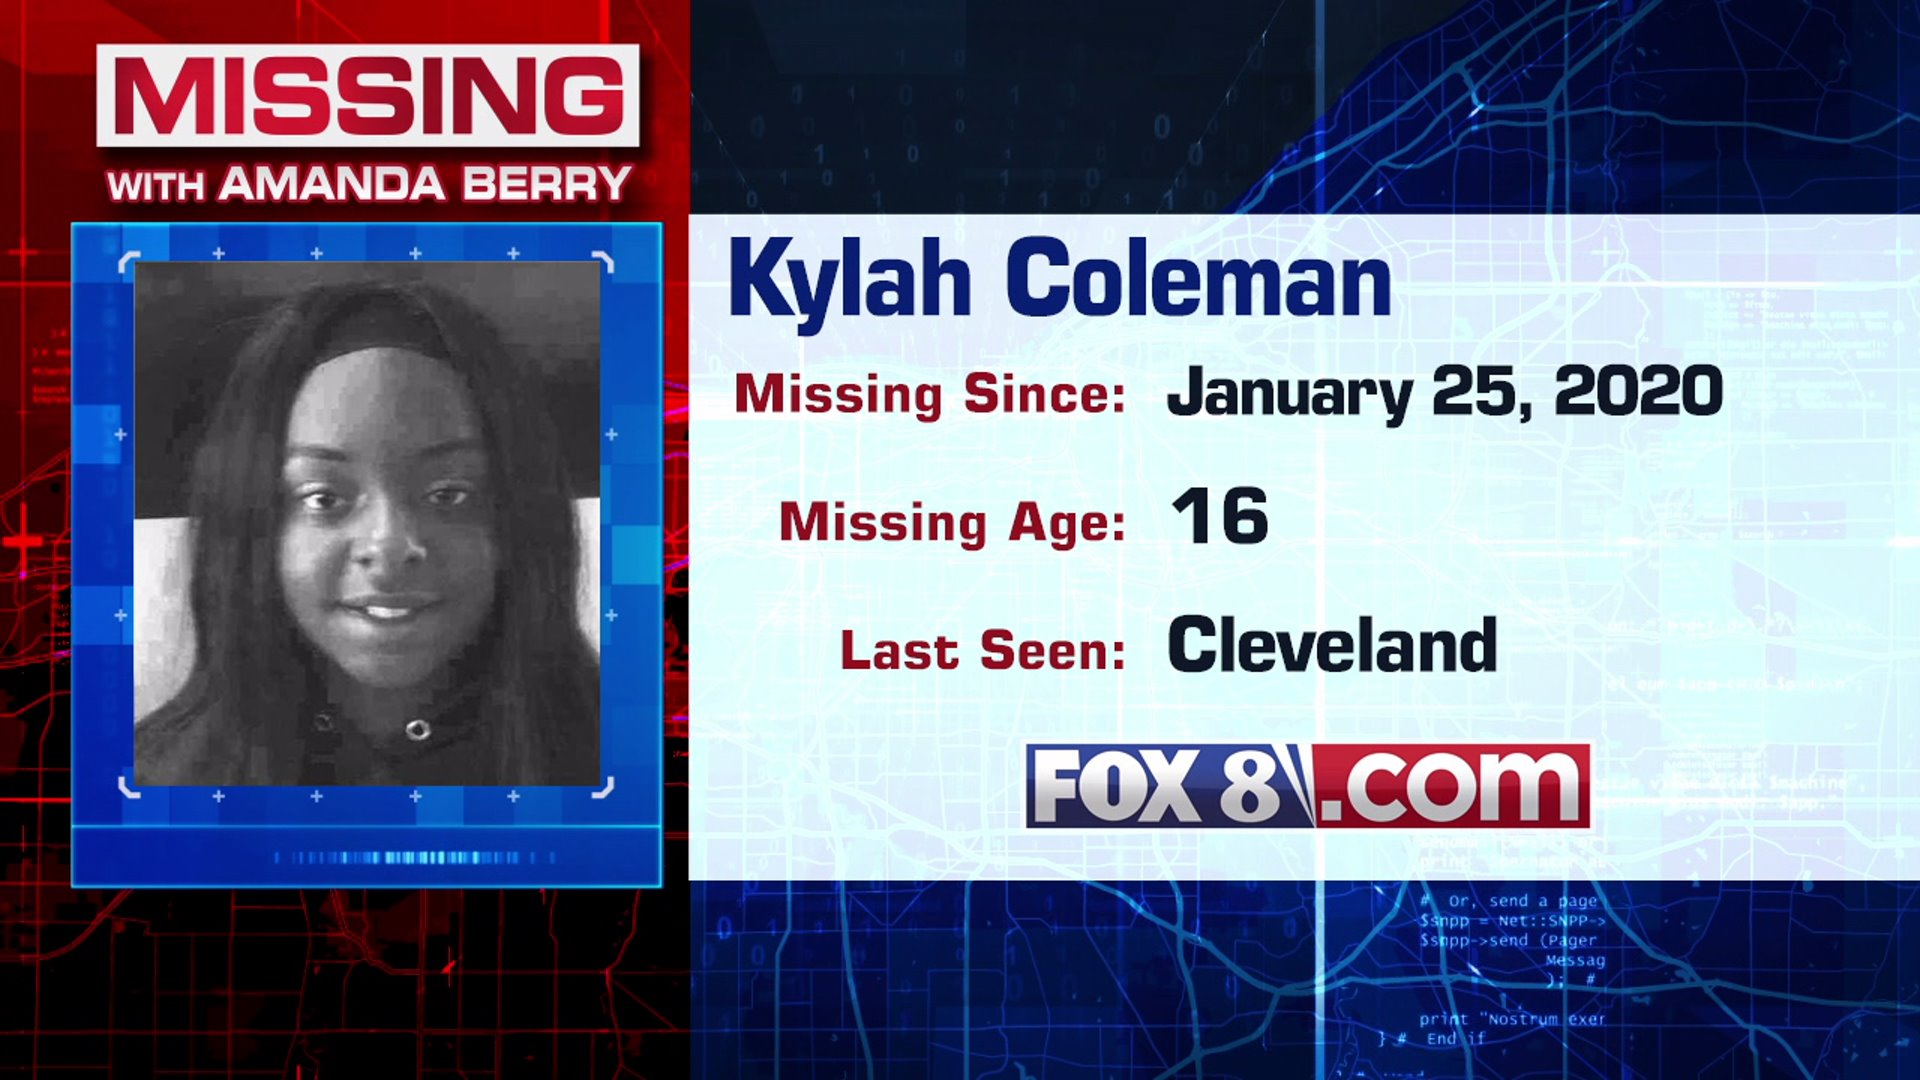 Missing Kylah Coleman